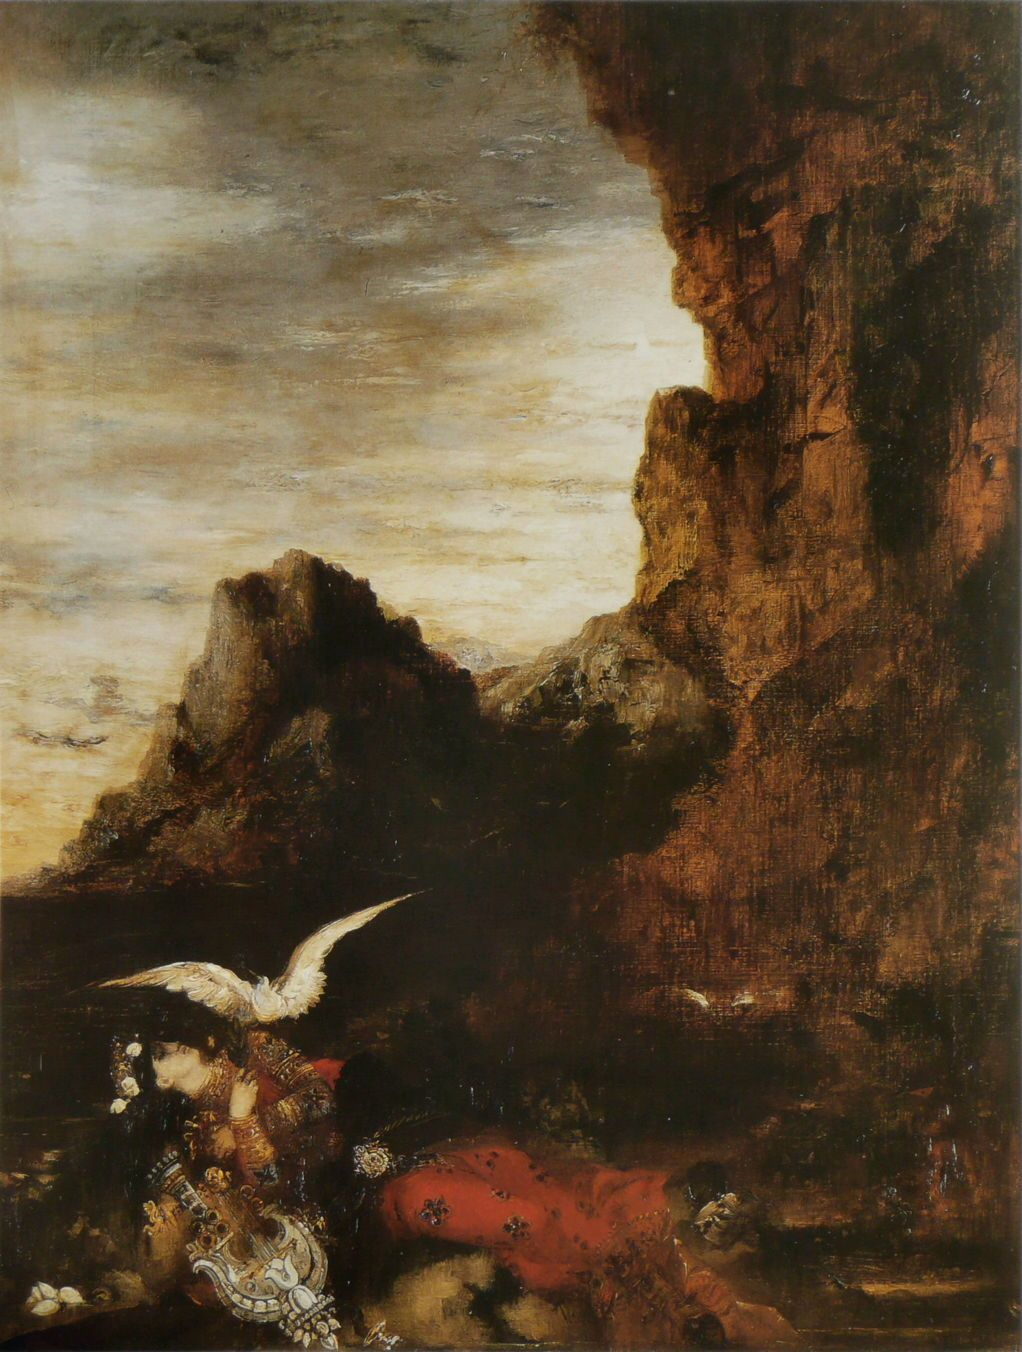 Gustave Moreau (1826–1898), The Death of Sappho (c 1870-2), oil on canvas, 81 × 62 cm, Private collection. Wikimedia Commons. - pigeons and doves in fine art - https://eclecticlightdotcom.files.wordpress.com/2016/12/moreaudeathofsappho.jpg